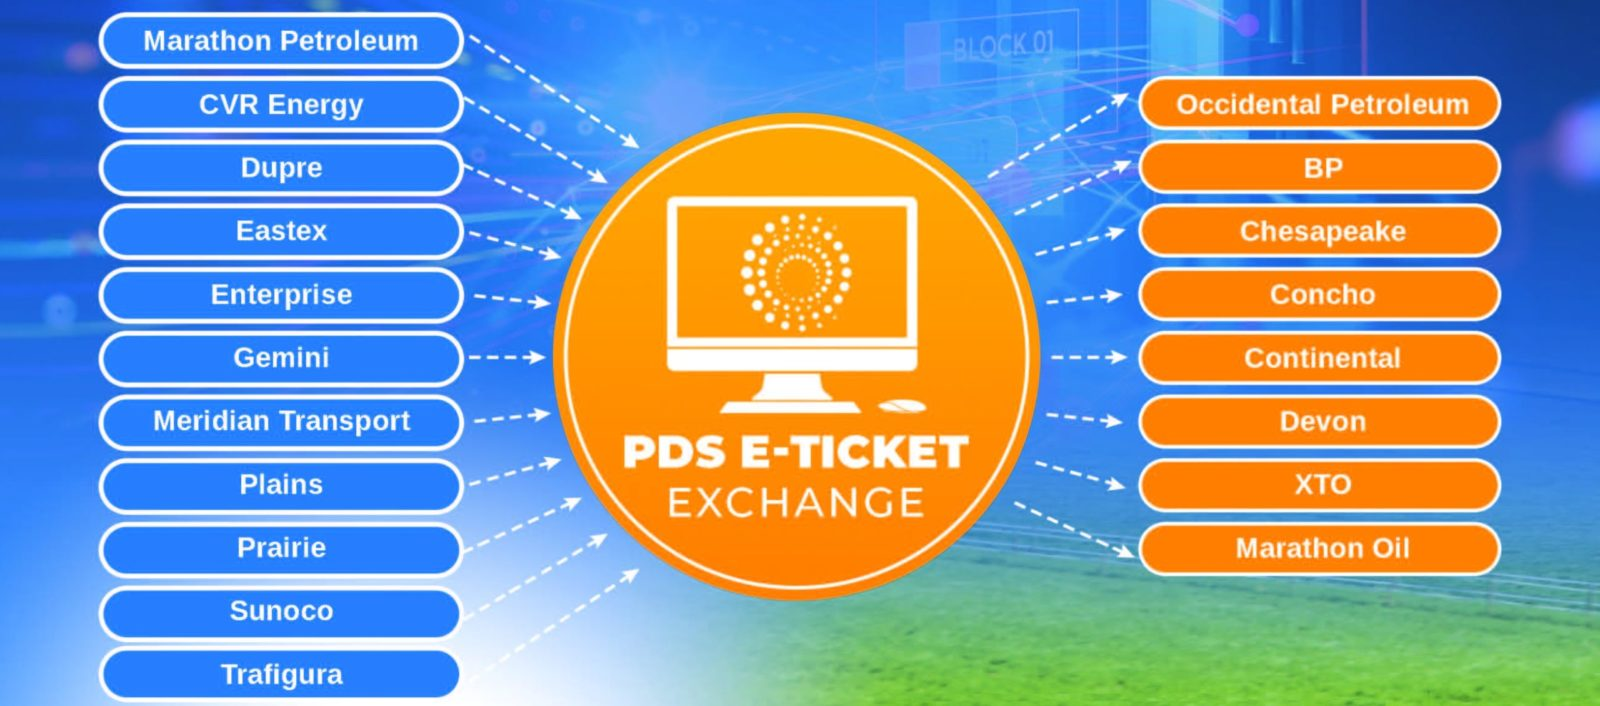 PDS E-Ticket Exchange